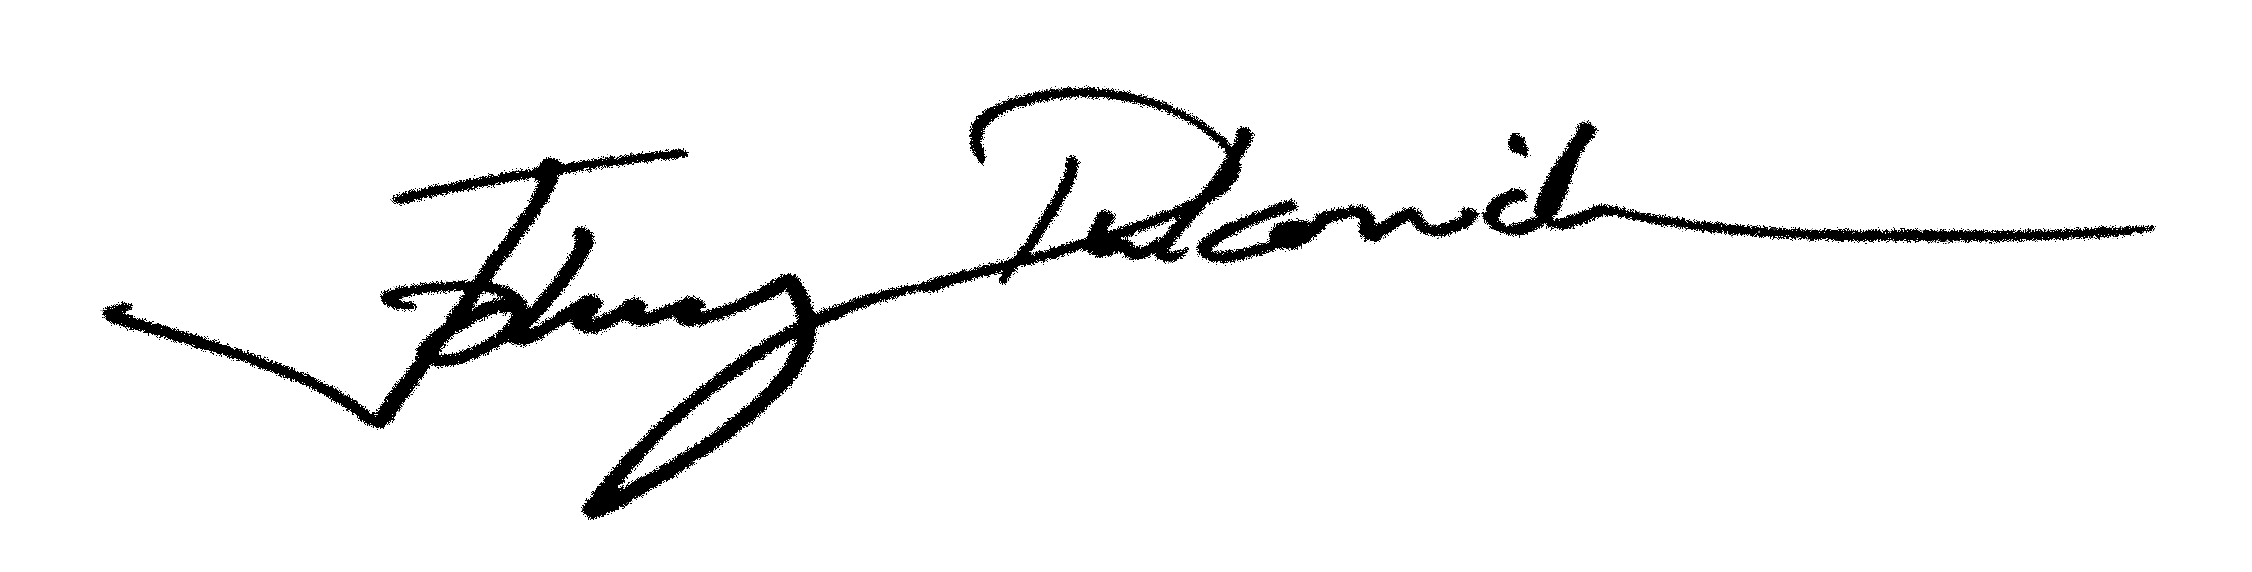 Johnny Dukovich Signature